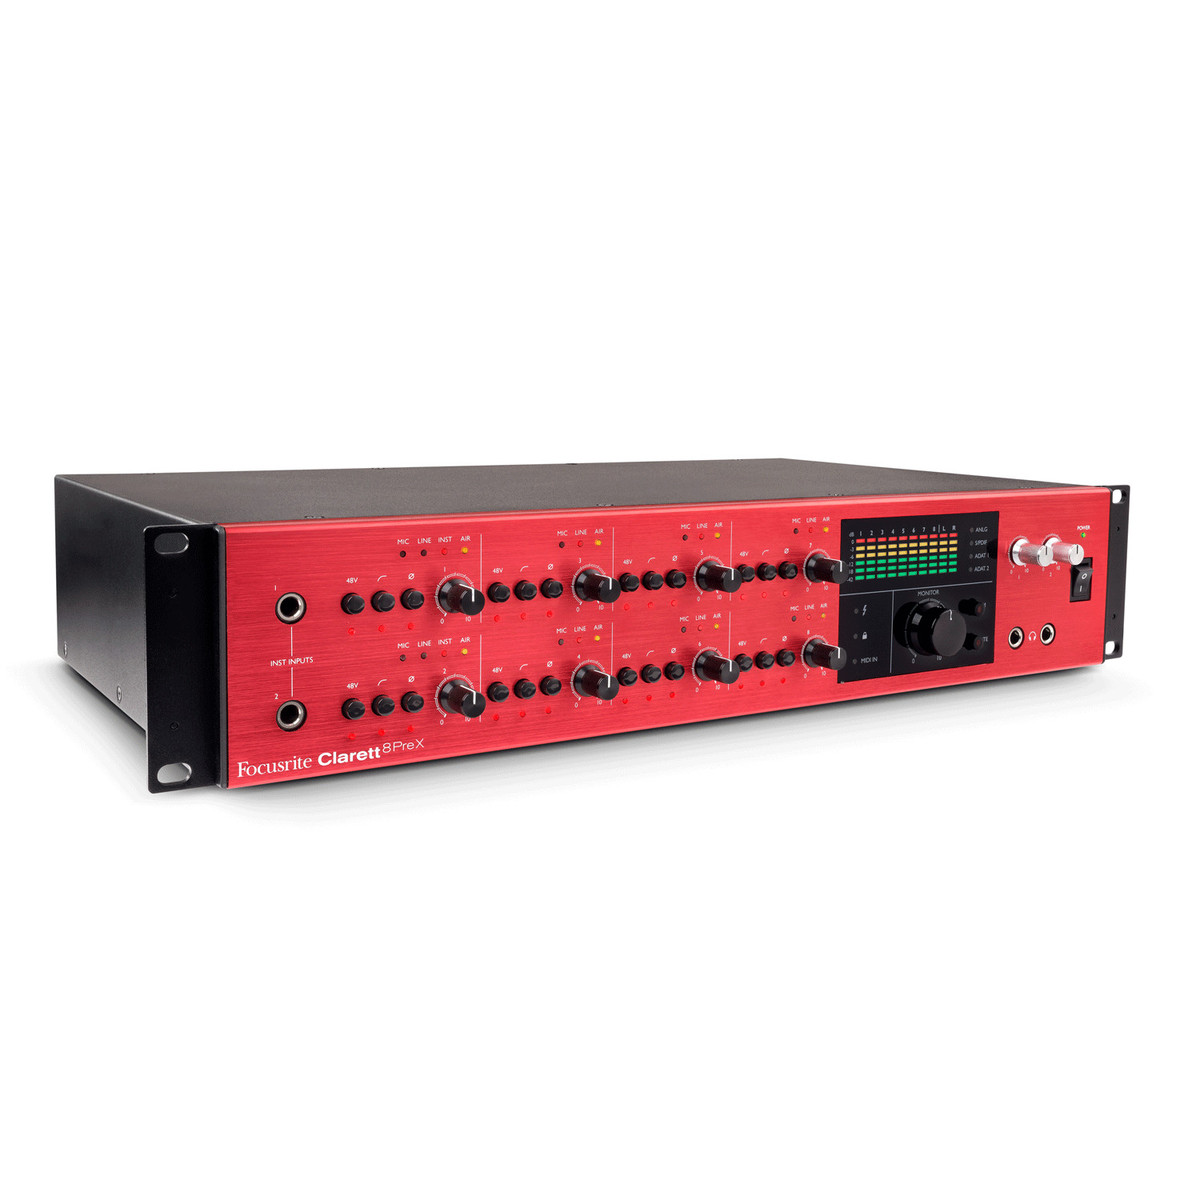 Image of Focusrite Clarett 8 Pre X Thunderbolt Audio Interface